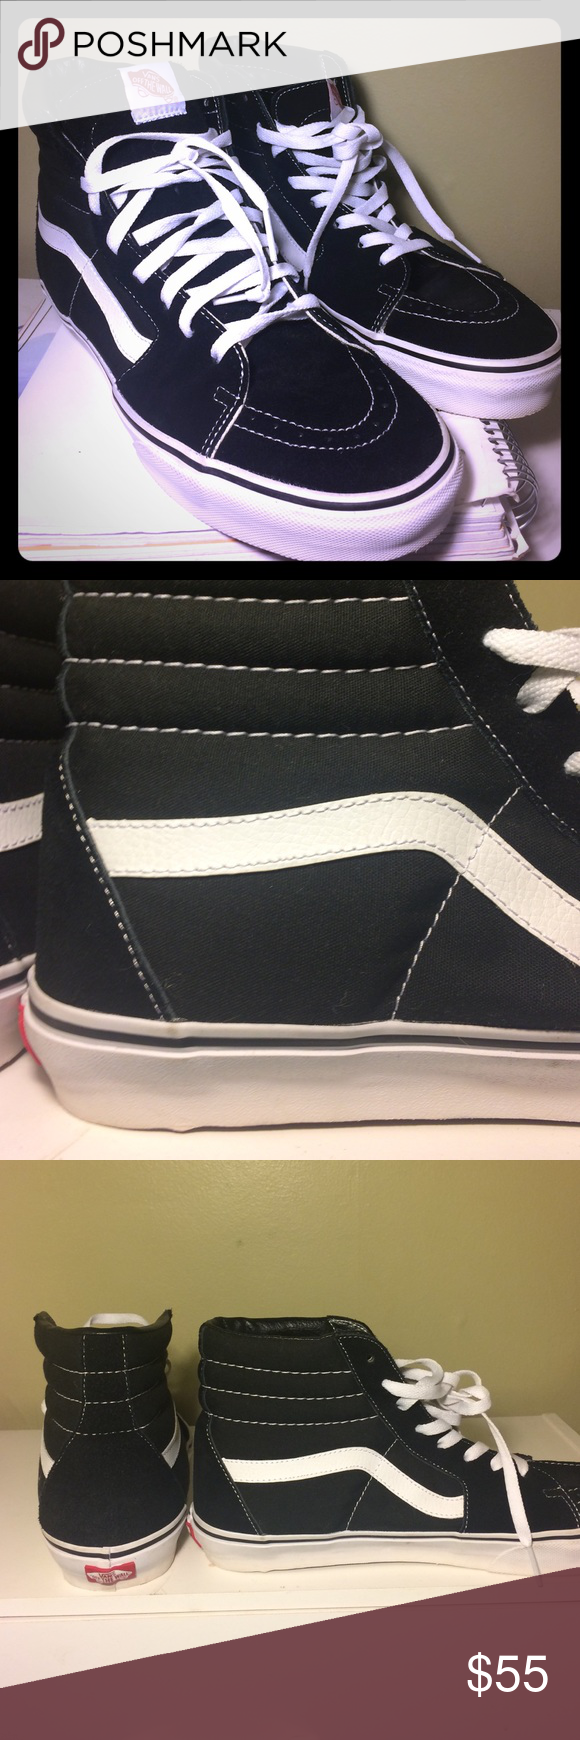 how to clean black and white sk8 hi vans